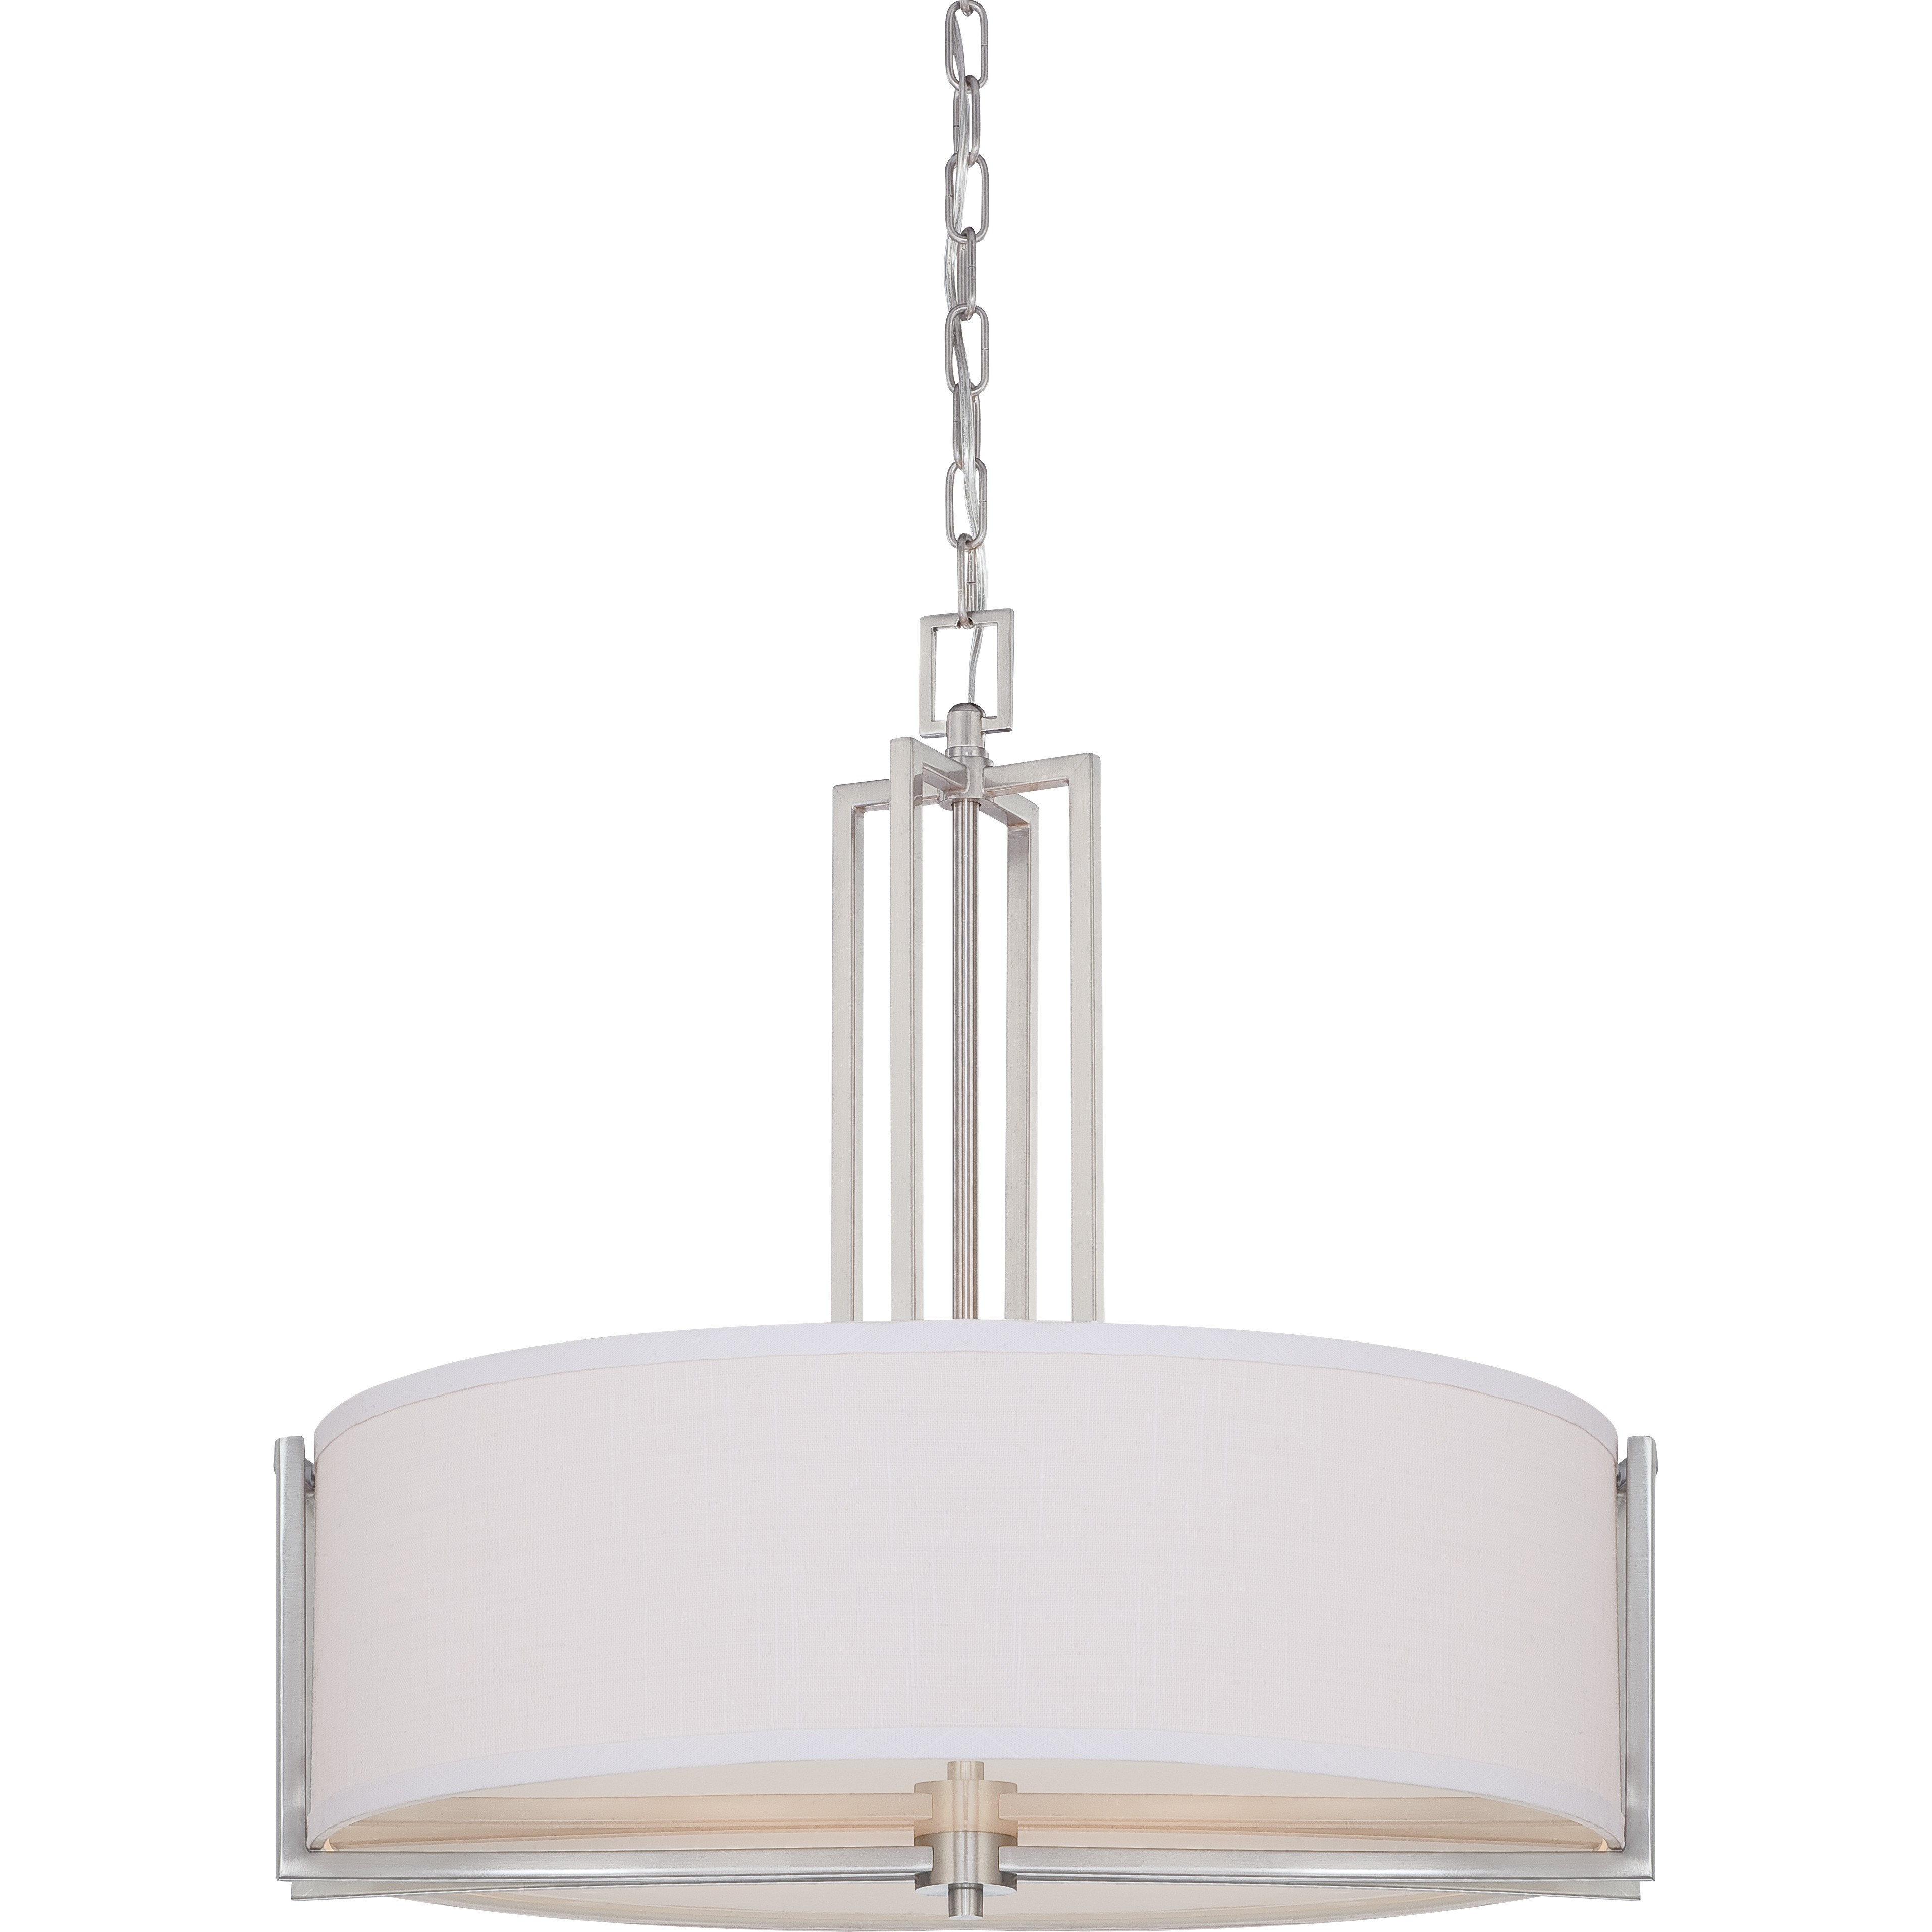 Nuvo 60 4756 4 Light Drum Pendant Lighting Gemini Collection Throughout Fabric Drum Shade Chandeliers (Image 22 of 25)